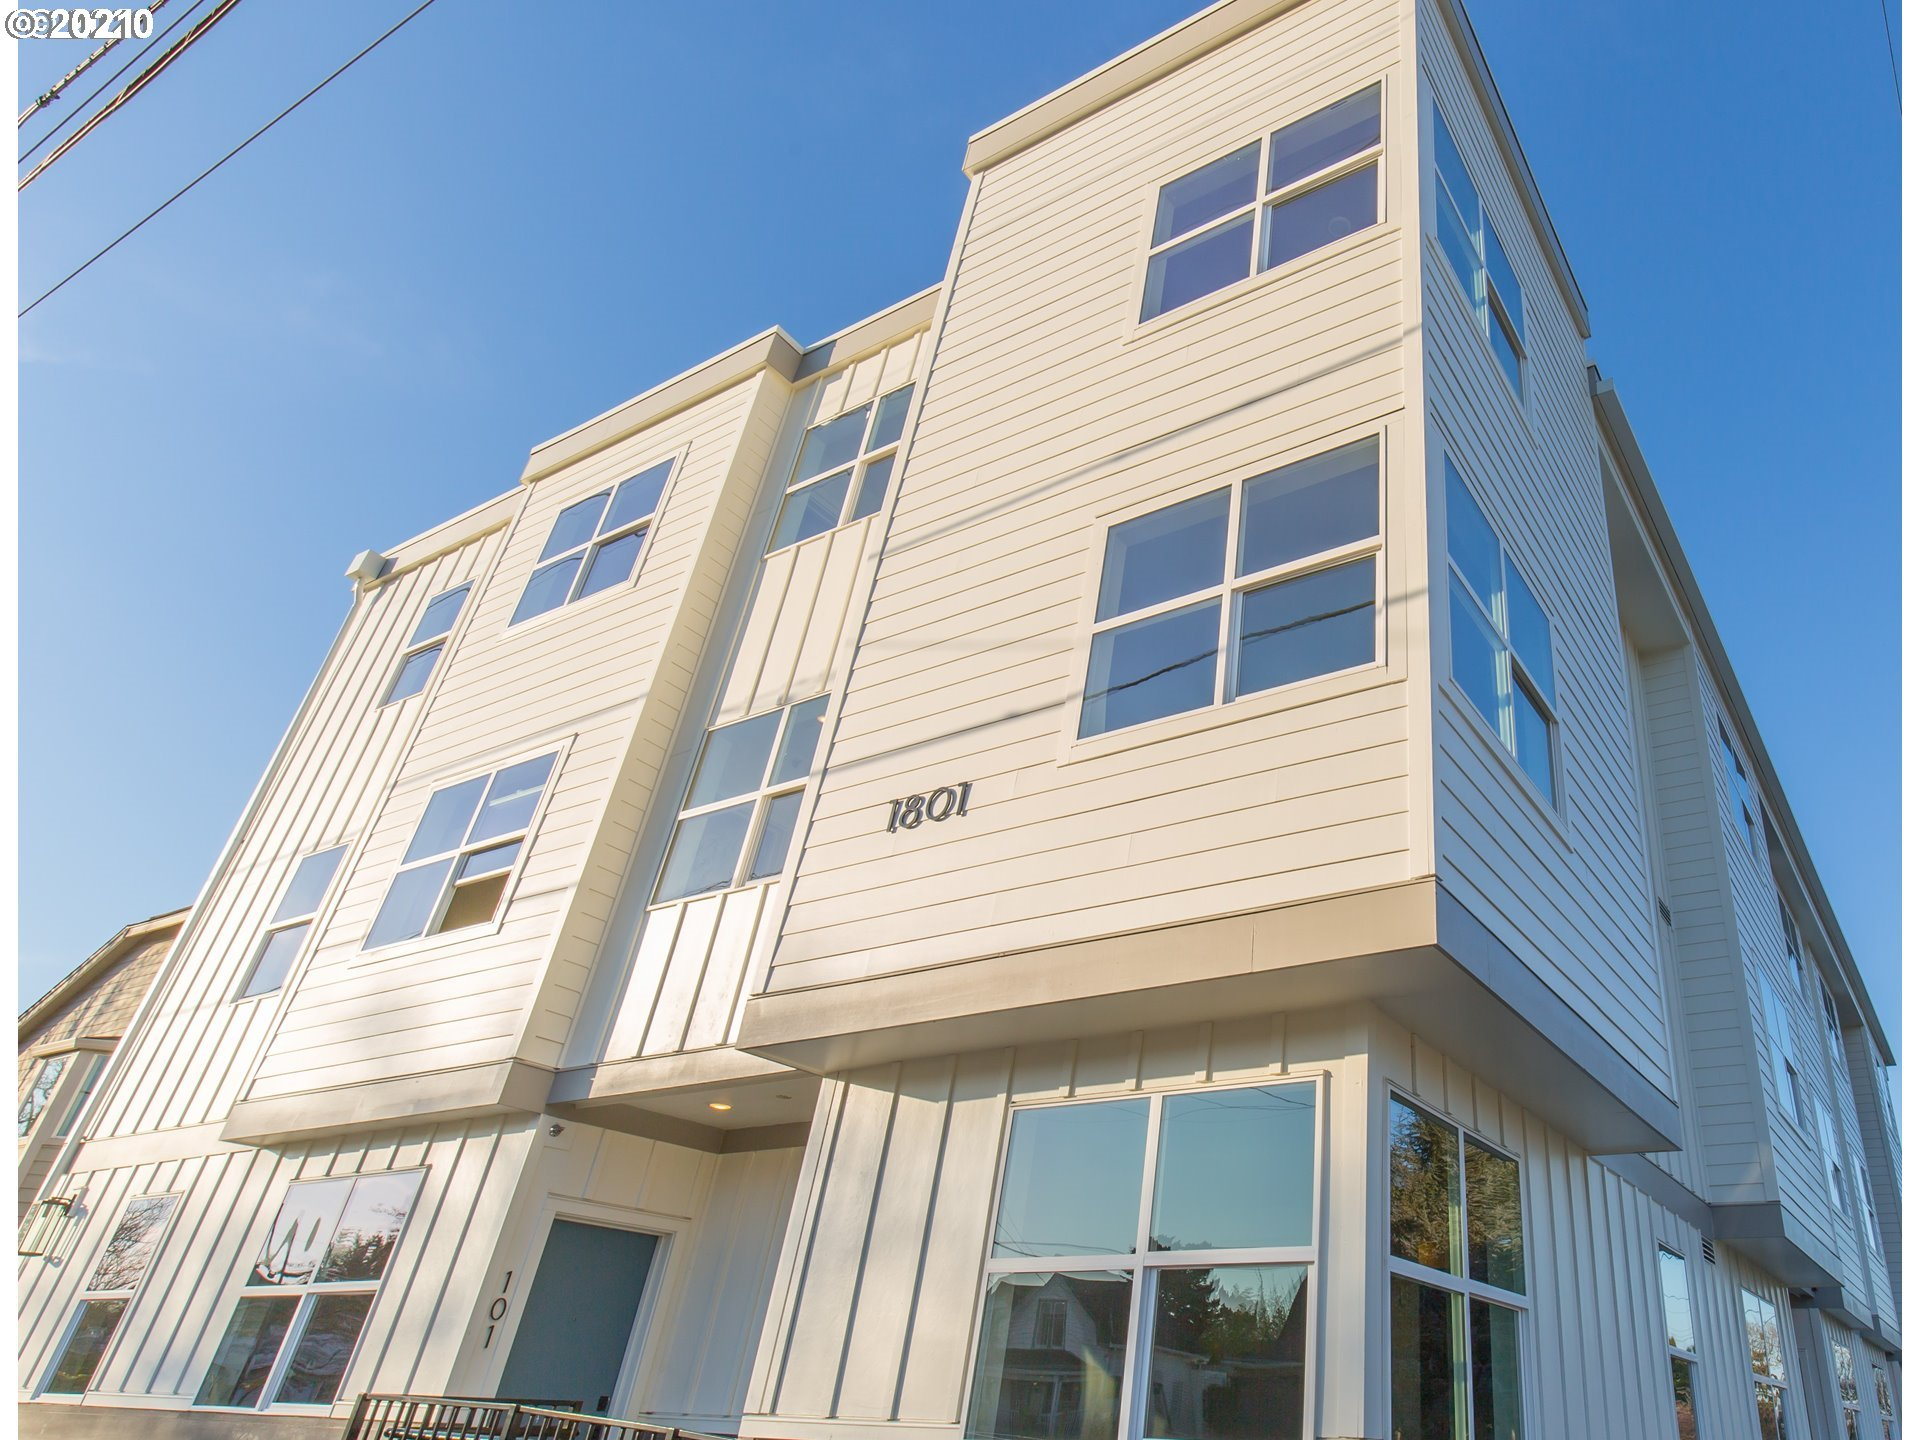 INCREDIBLE CONDO, amazing price! Stop renting tomorrow! Beautiful and affordable condo in North Portland awaits in Arbor Lodge, Portlands most charming neighborhood! This one bedroom home features carrera marble counters, stainless steel appliances, European finished cabinets, porcelain tile backsplash, 9+ ft ceilings, VERY low HOA dues, and so much more! Only moments from the Max station, New Seasons, coffee shops and the best PDX has to offer!